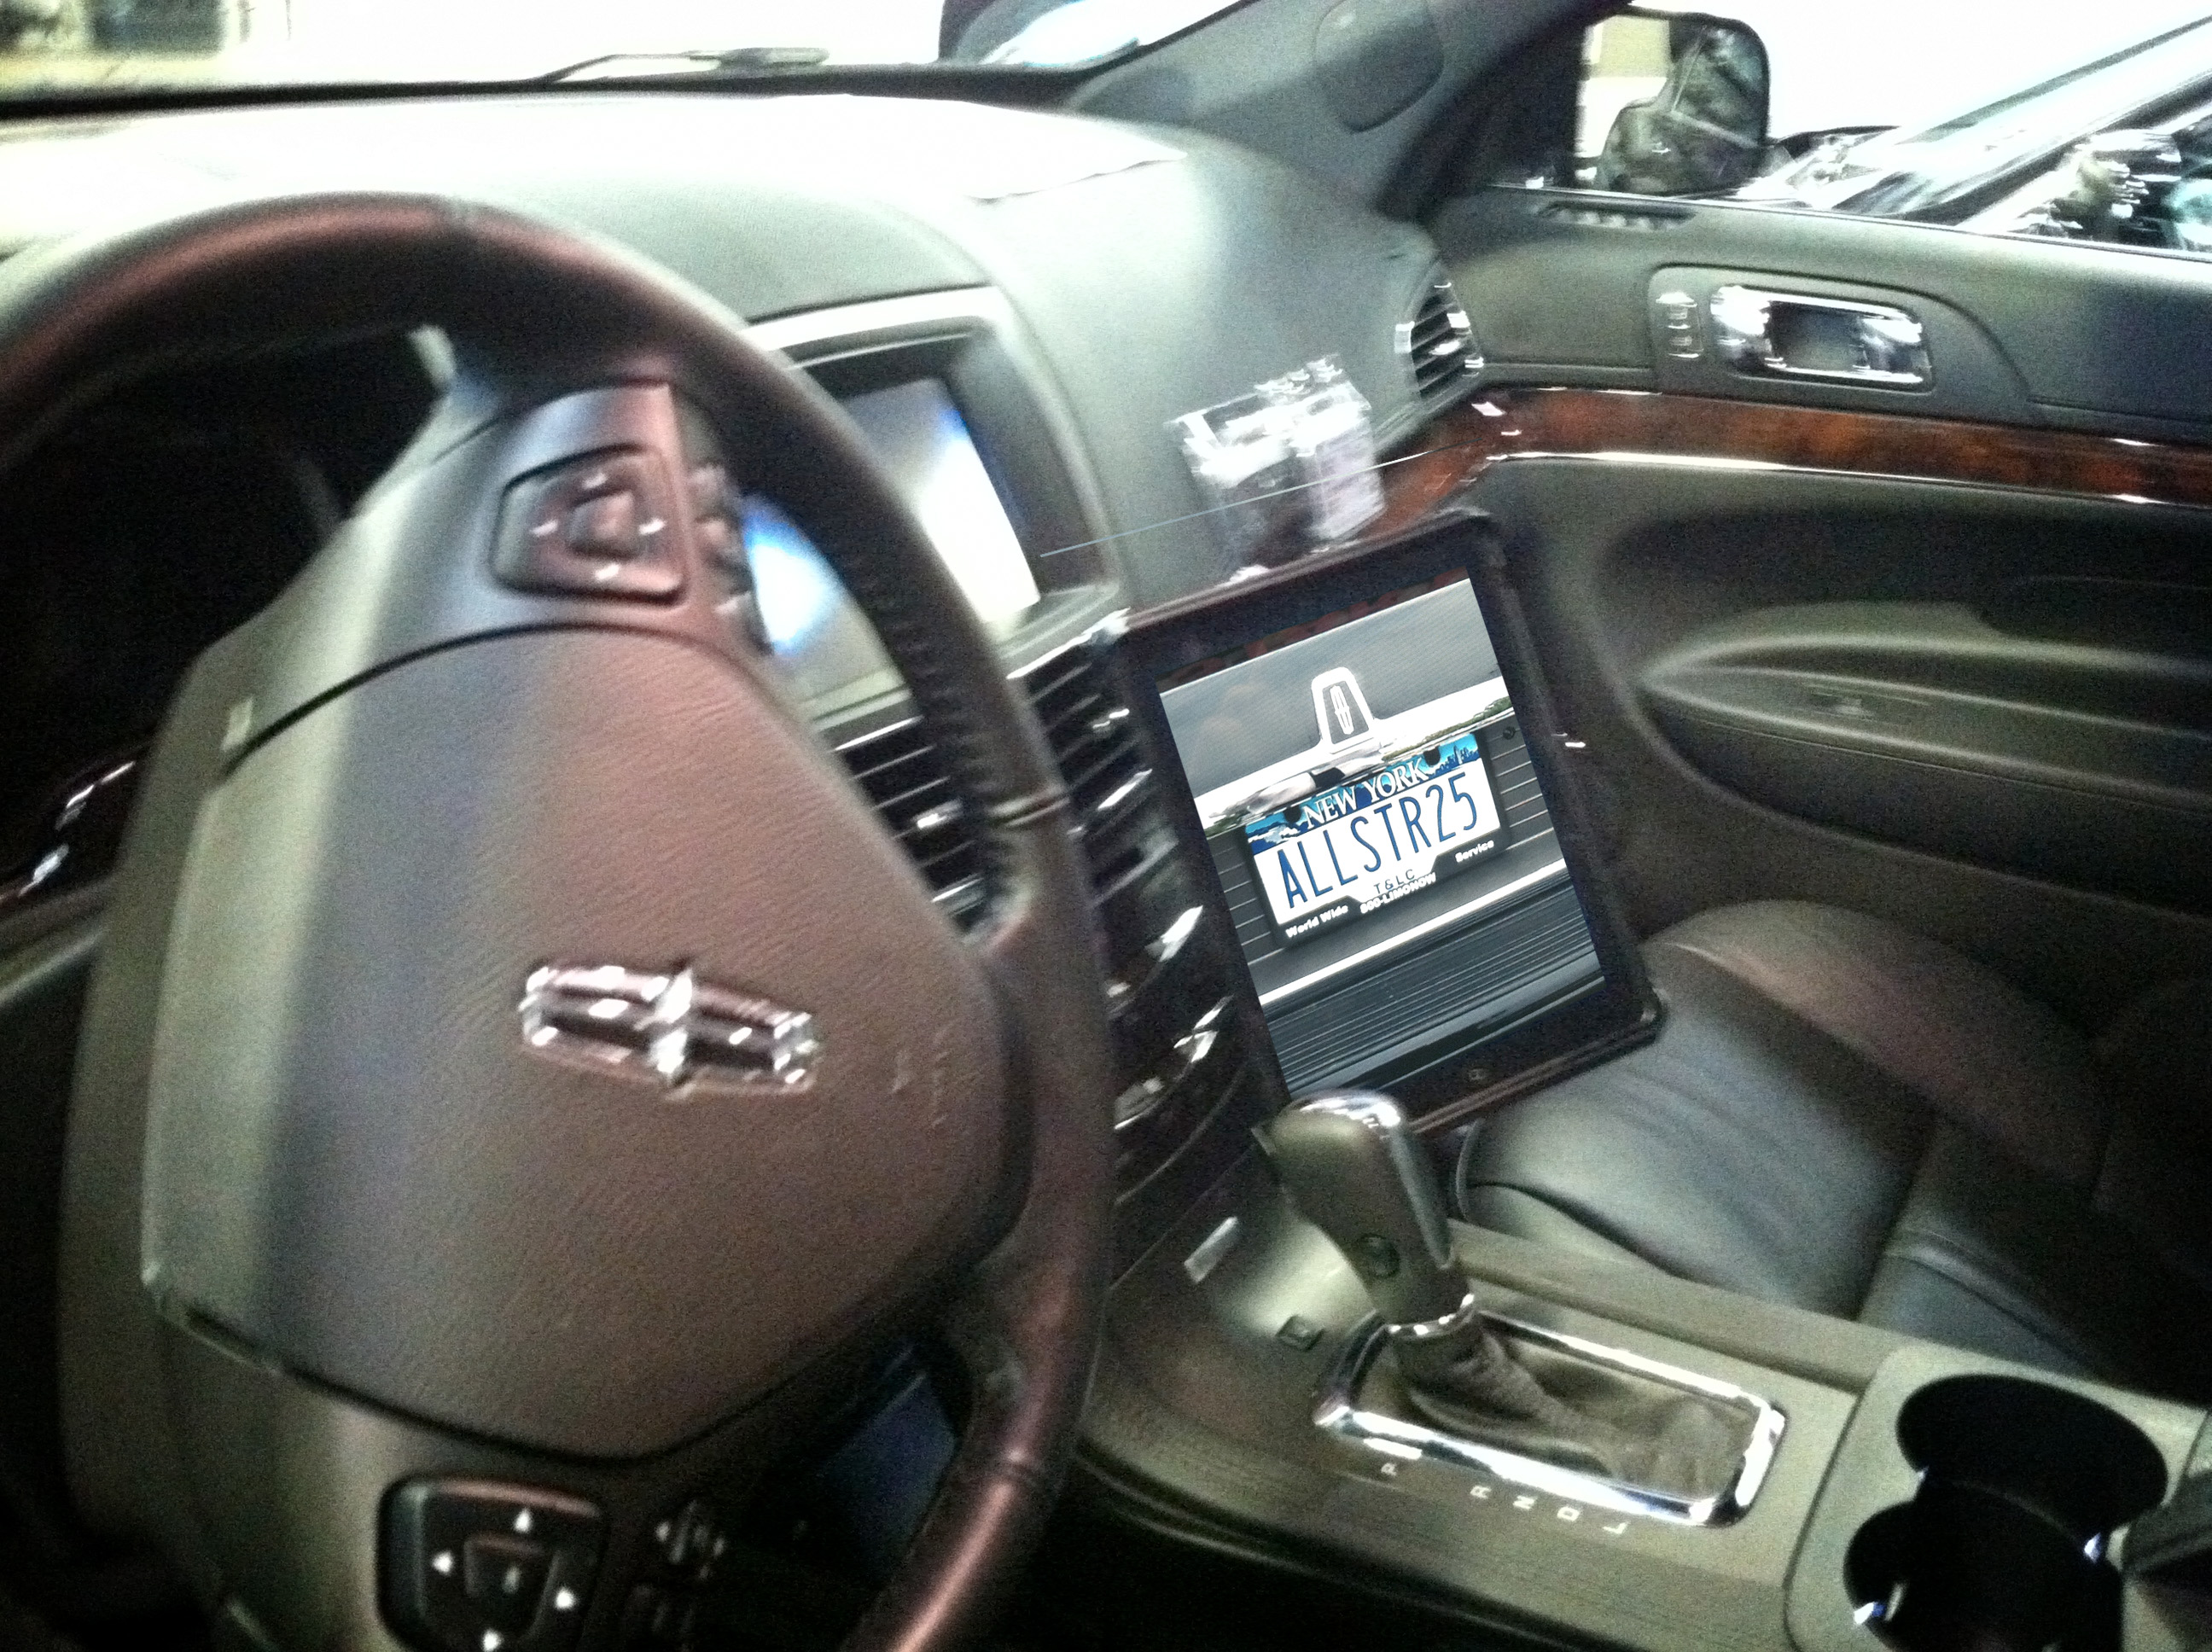 2013 MKT Lincoln Town Car with All Star Limo's new iPads!